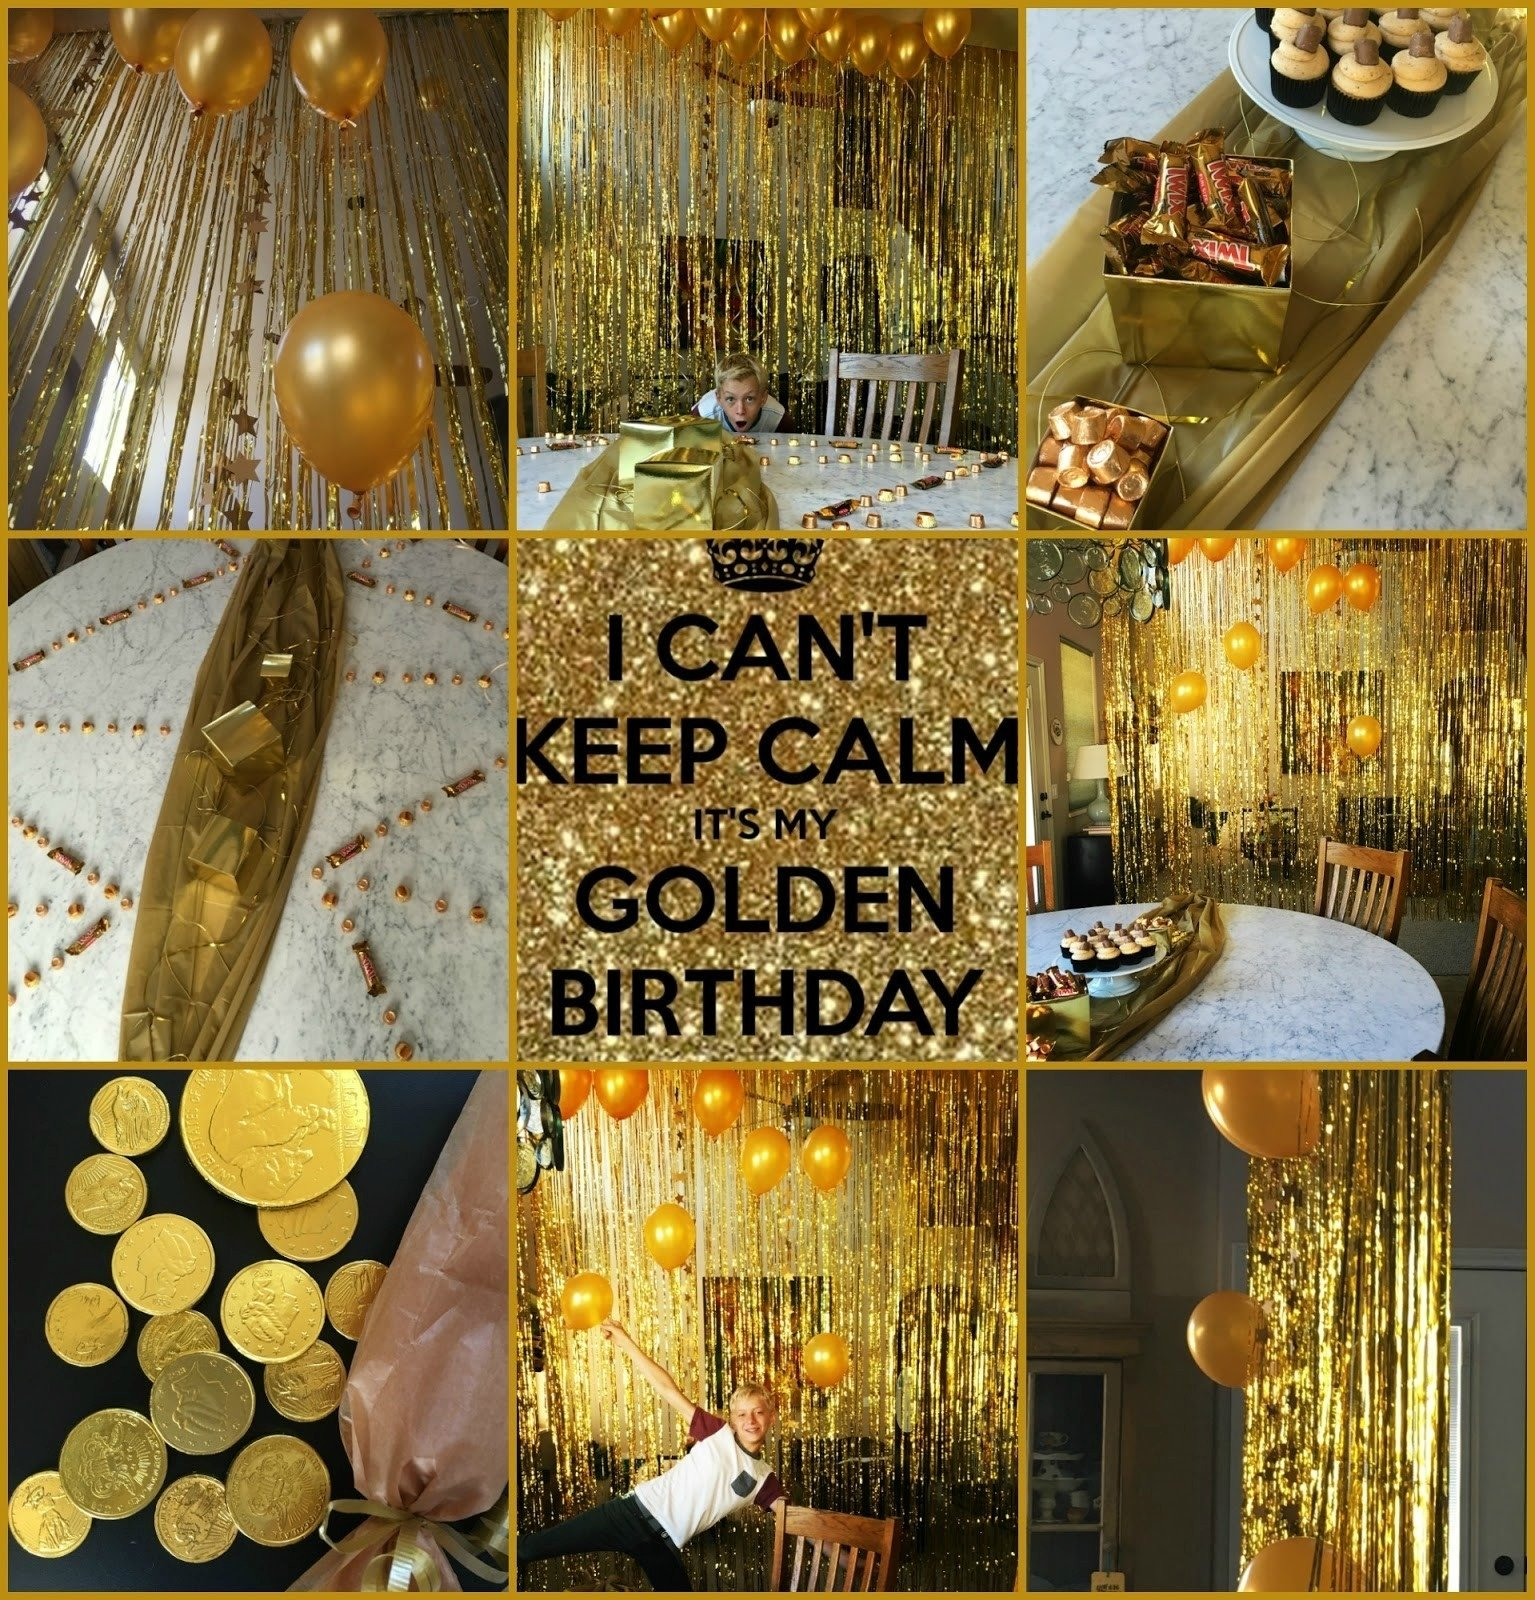 10 Unique Golden Birthday Party Ideas For Adults 20 fresh collection about golden birthday ideas that oneself shouldn 1 2021